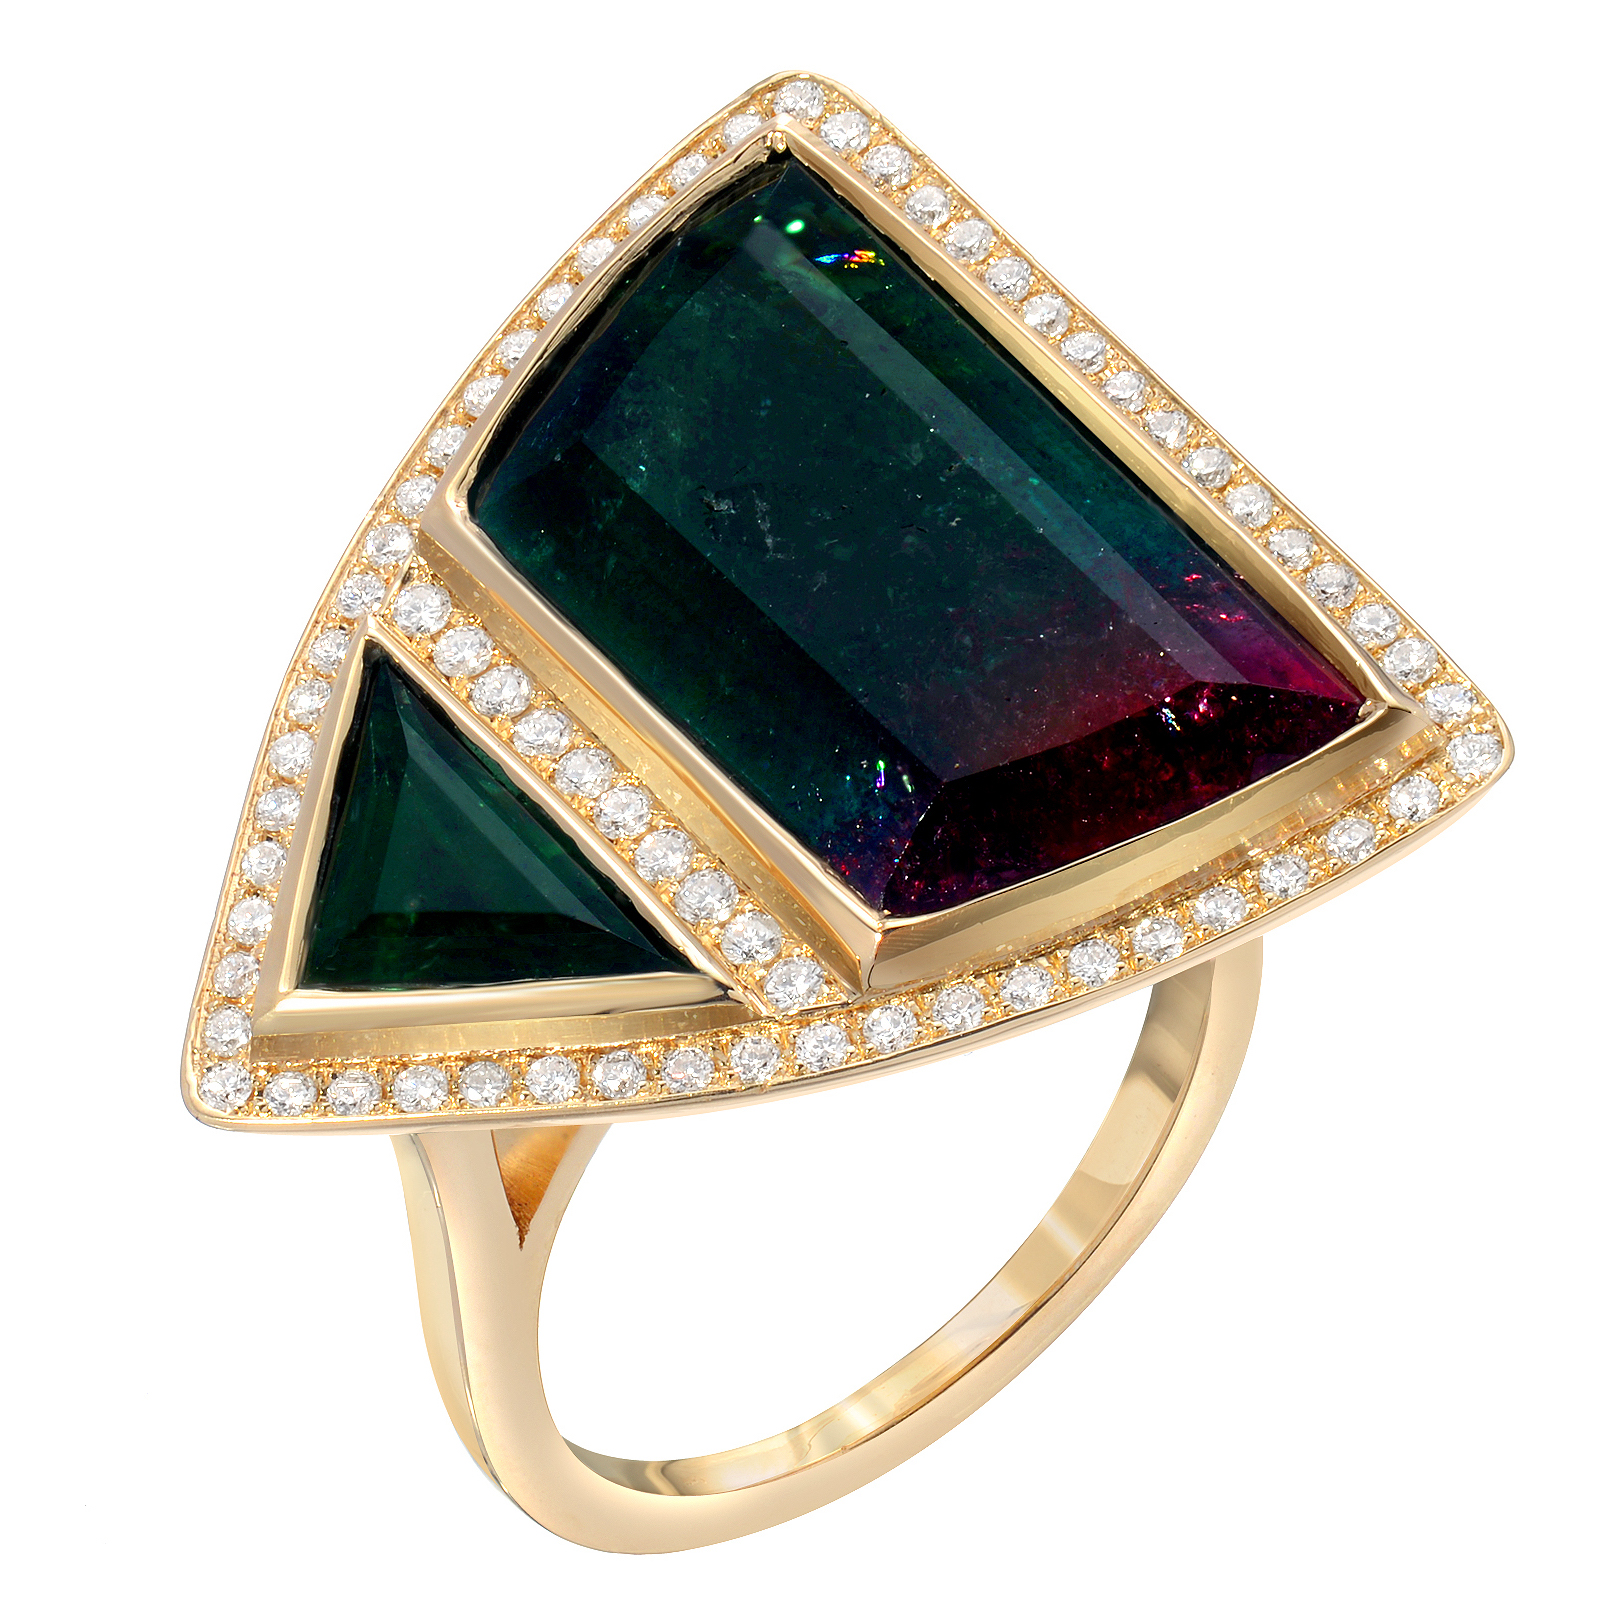 Rock and Gems Jewelry bicolor tourmaline ring | JCK On Your Market